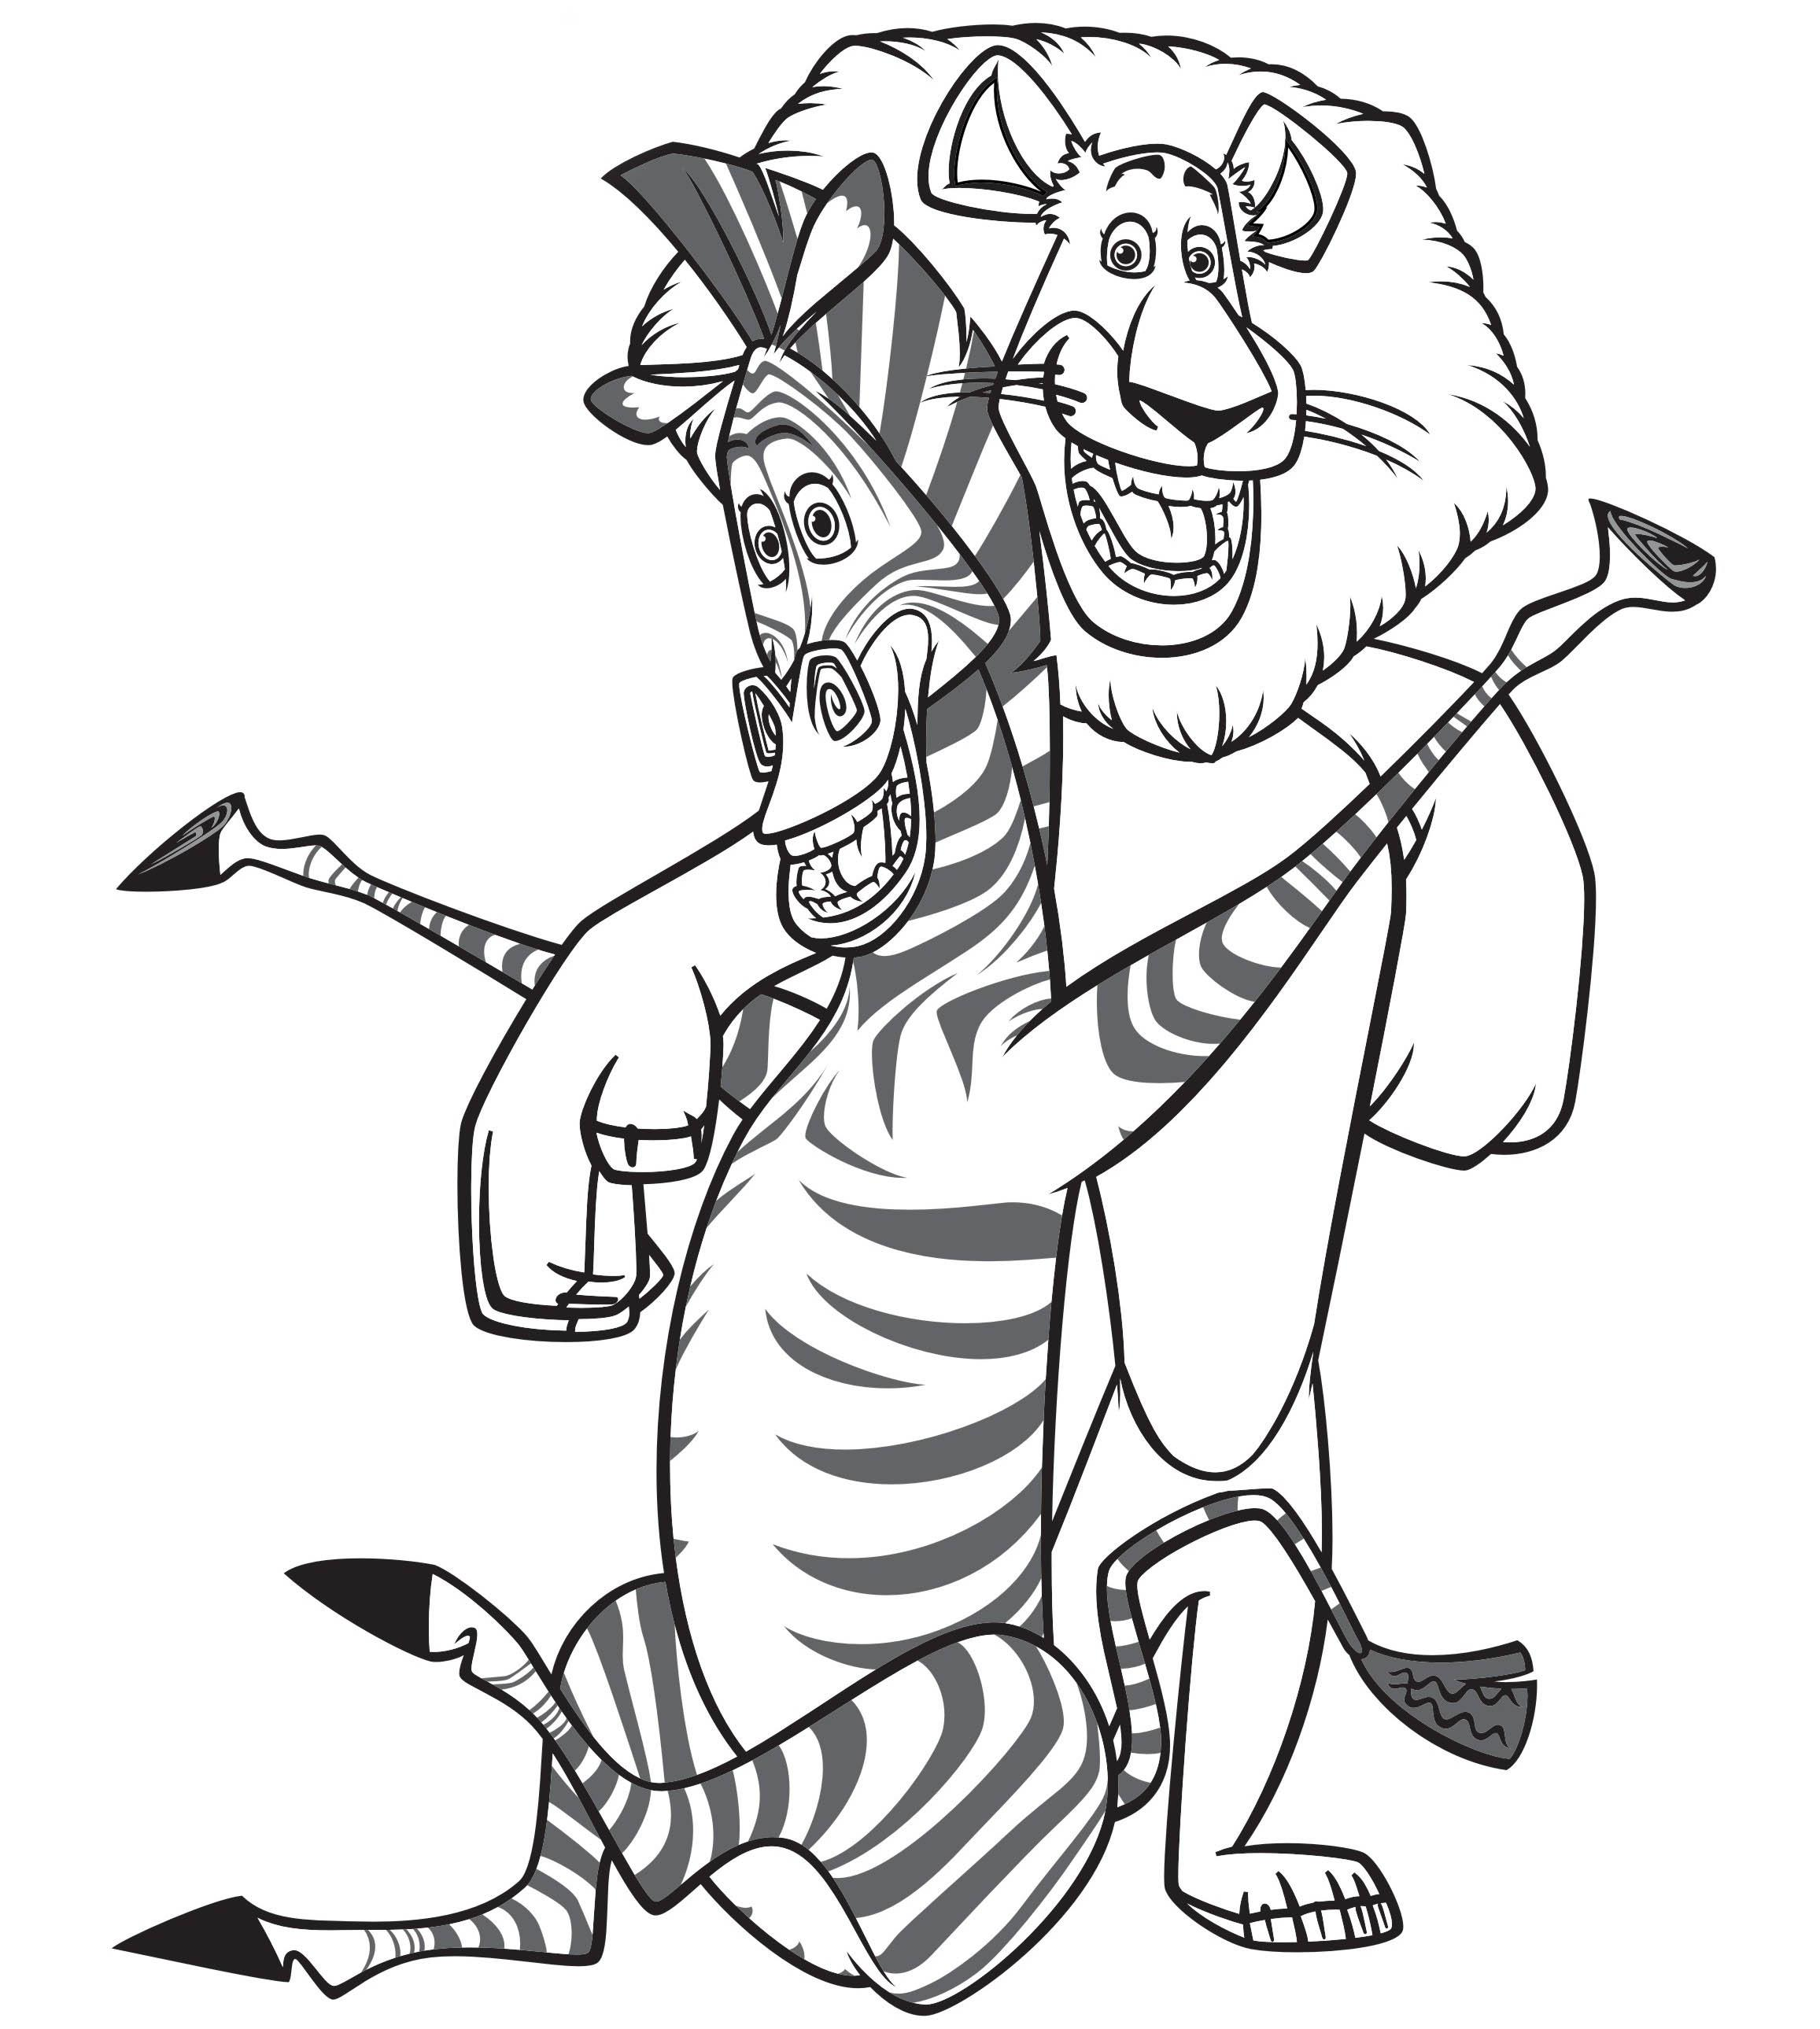 Cartoon Characters Coloring Pages To Download And Print